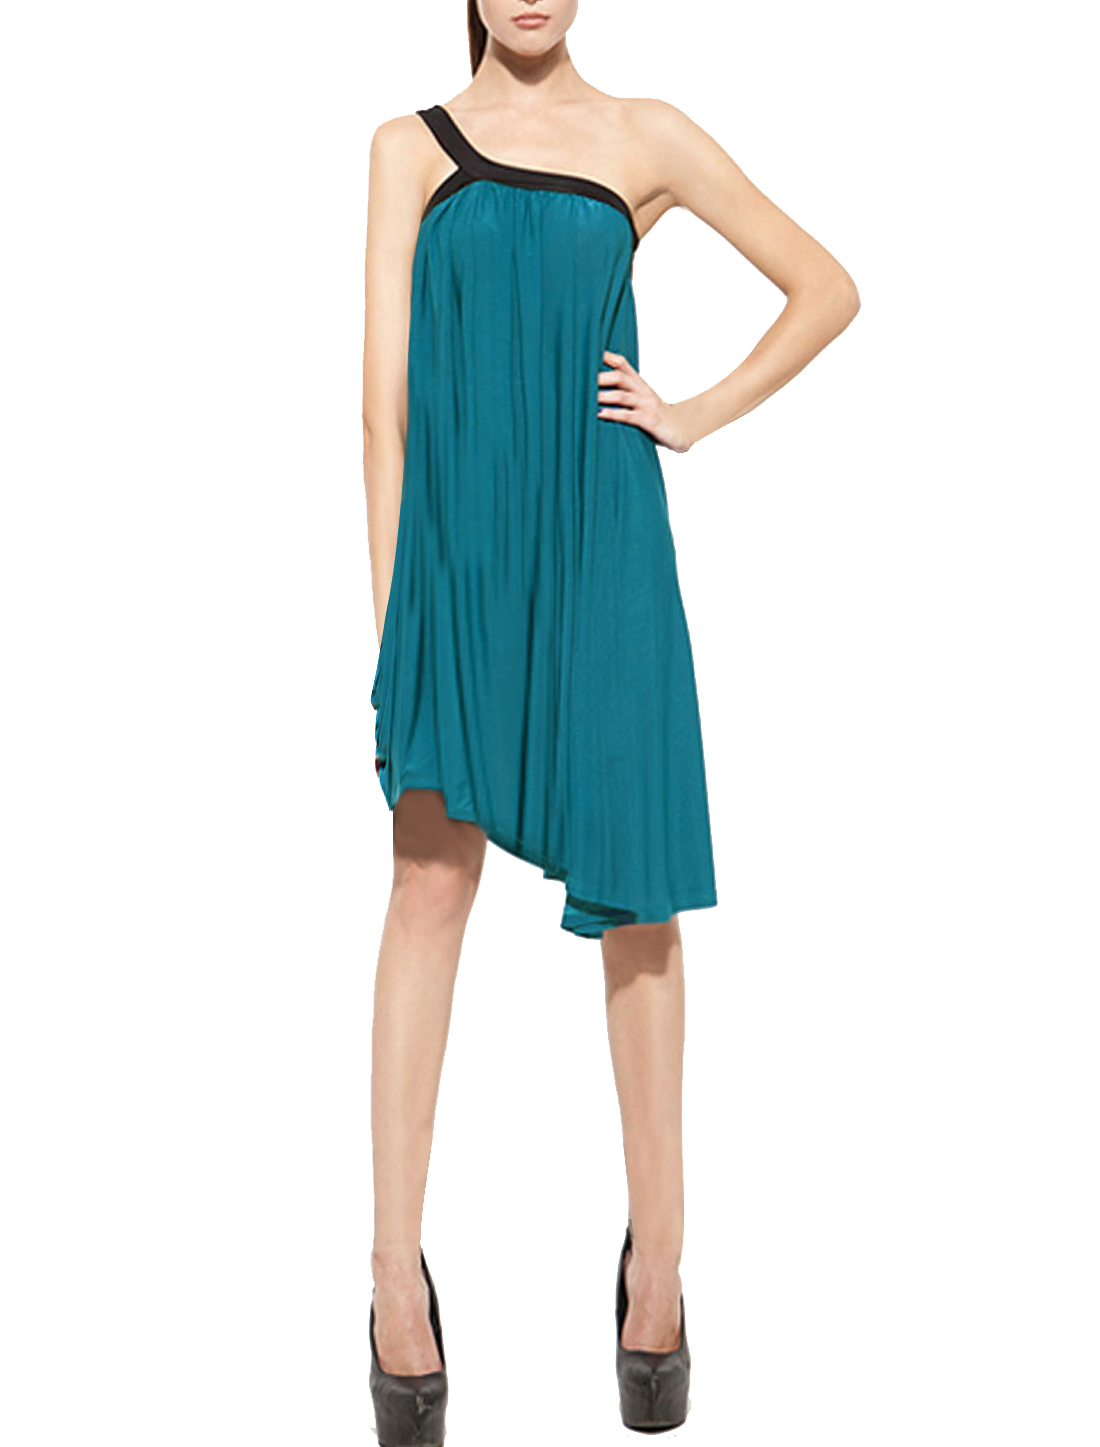 Woman Elegant Slant Shouler Pleated Irregular Hem Dress Teal Green XS